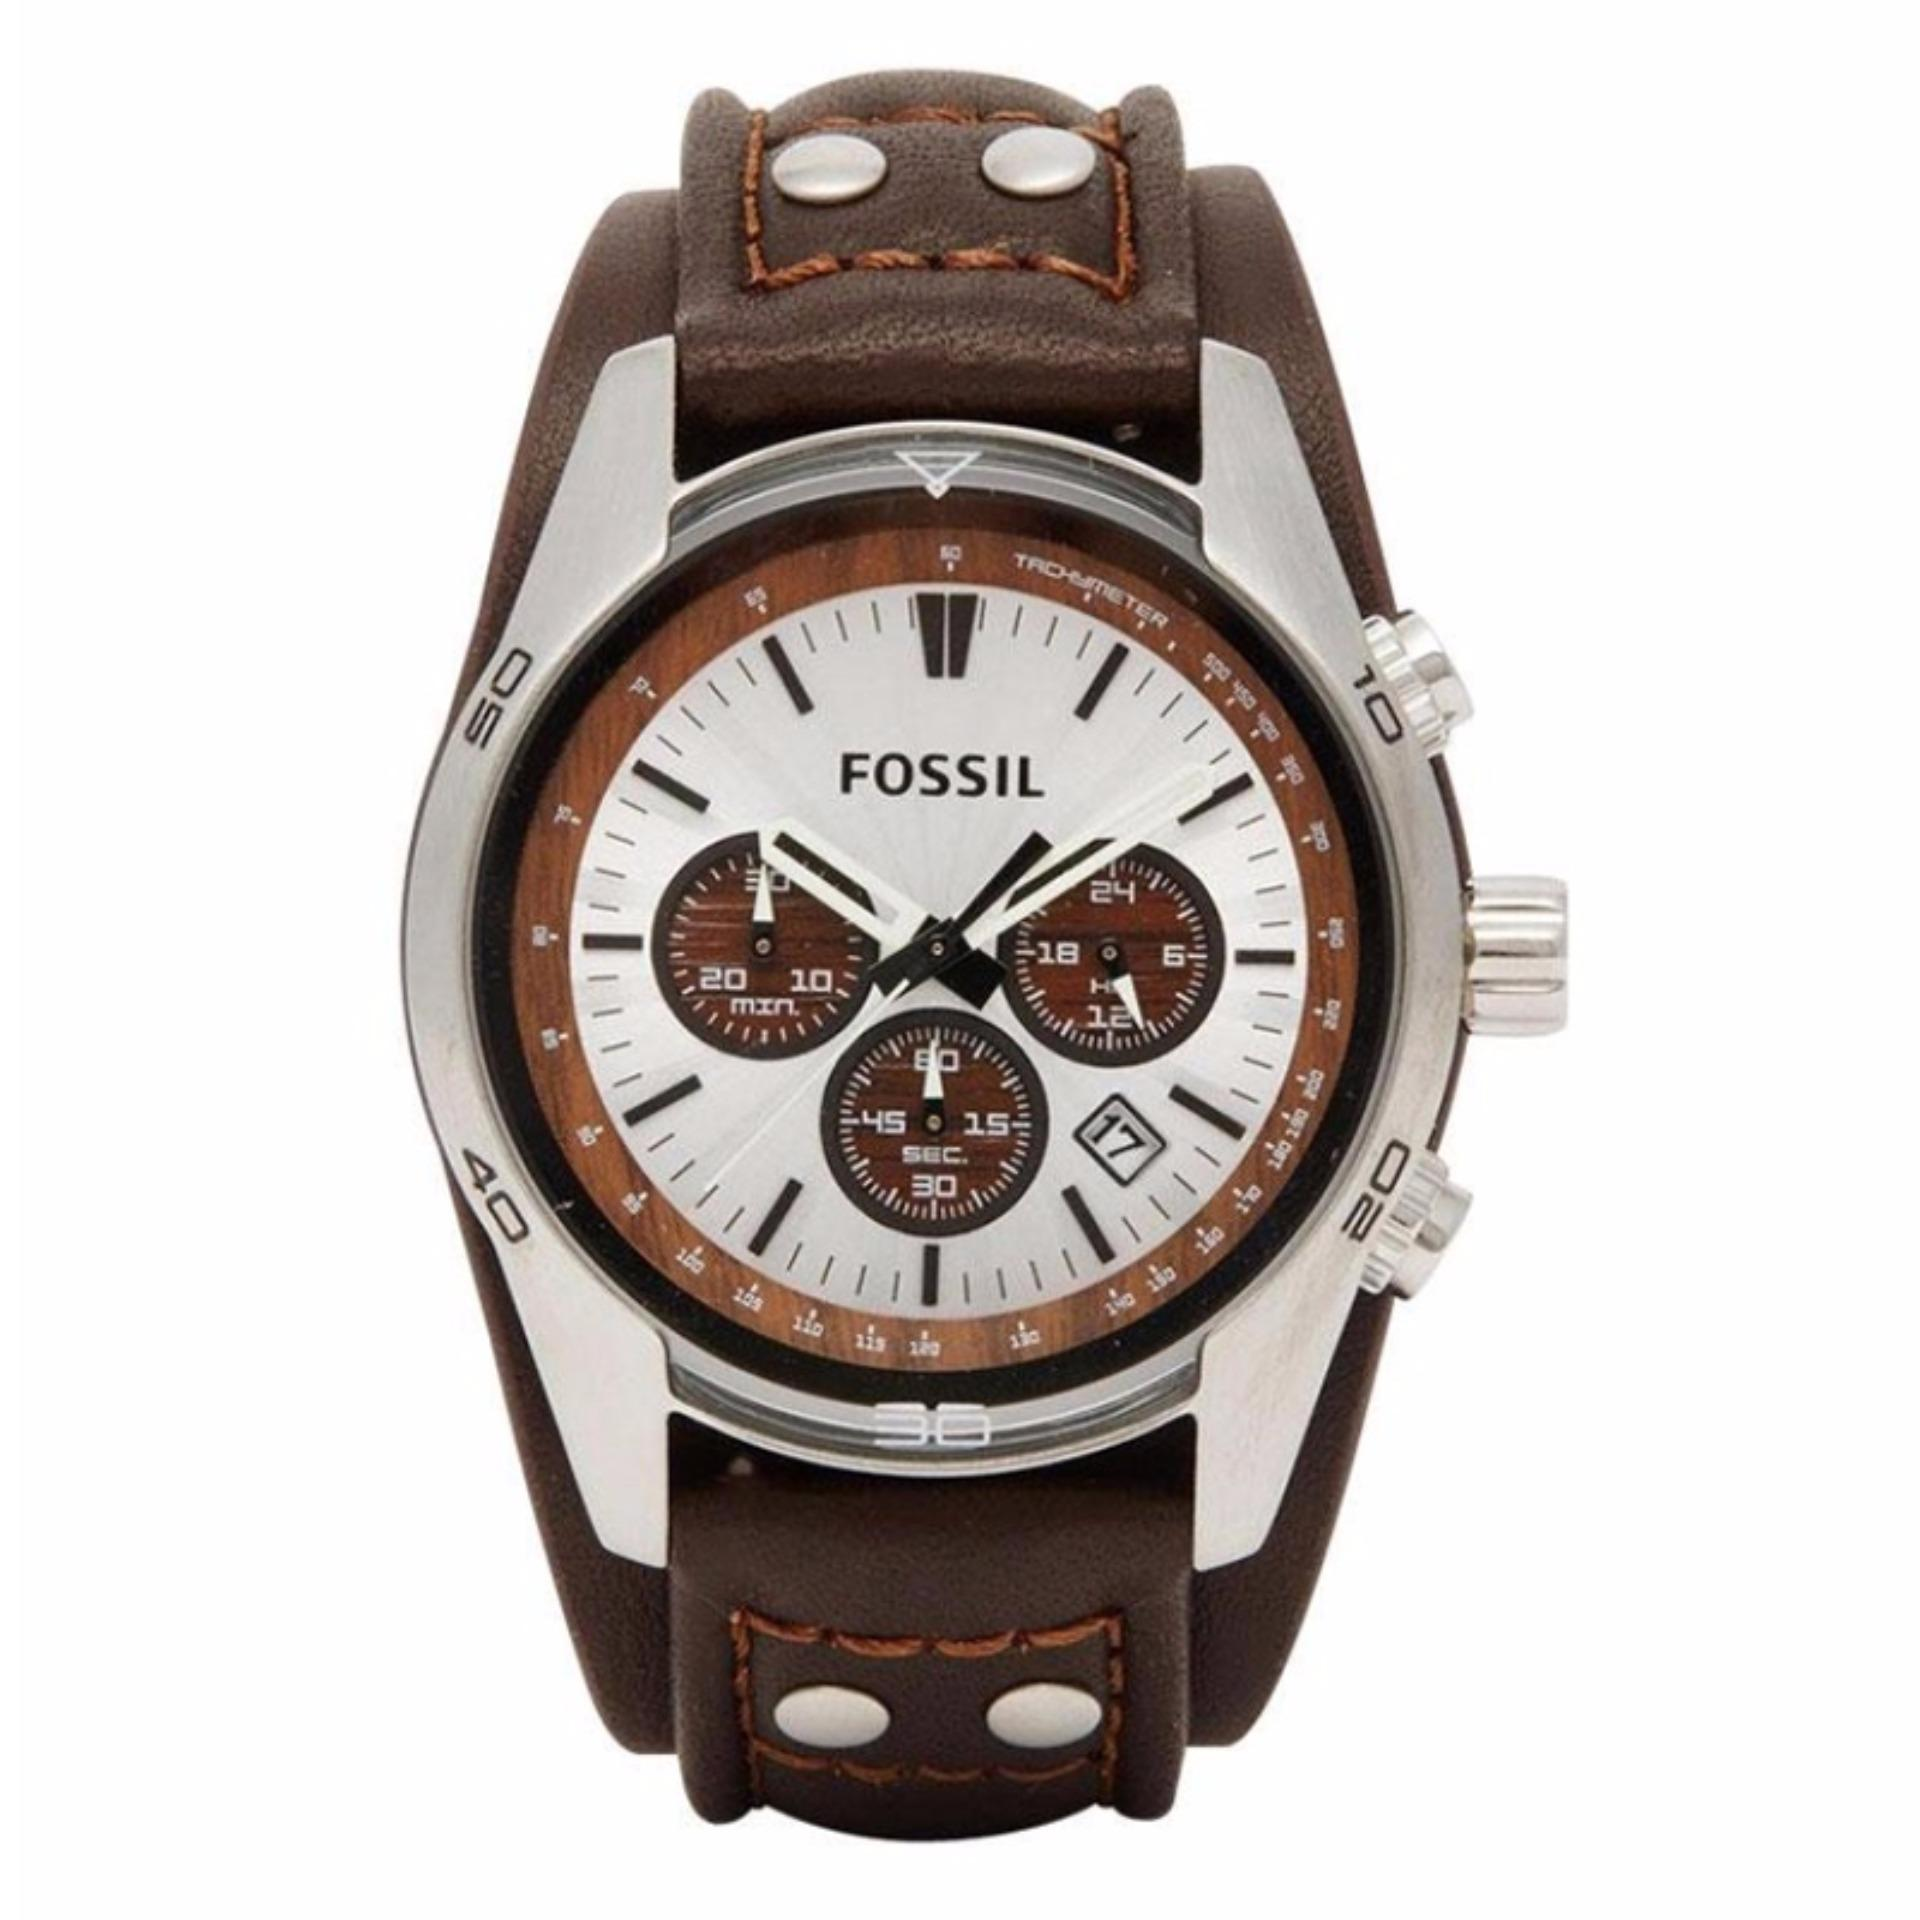 Review Fossil Ch2565 Jam Tangan Pria Brown Strap Leather